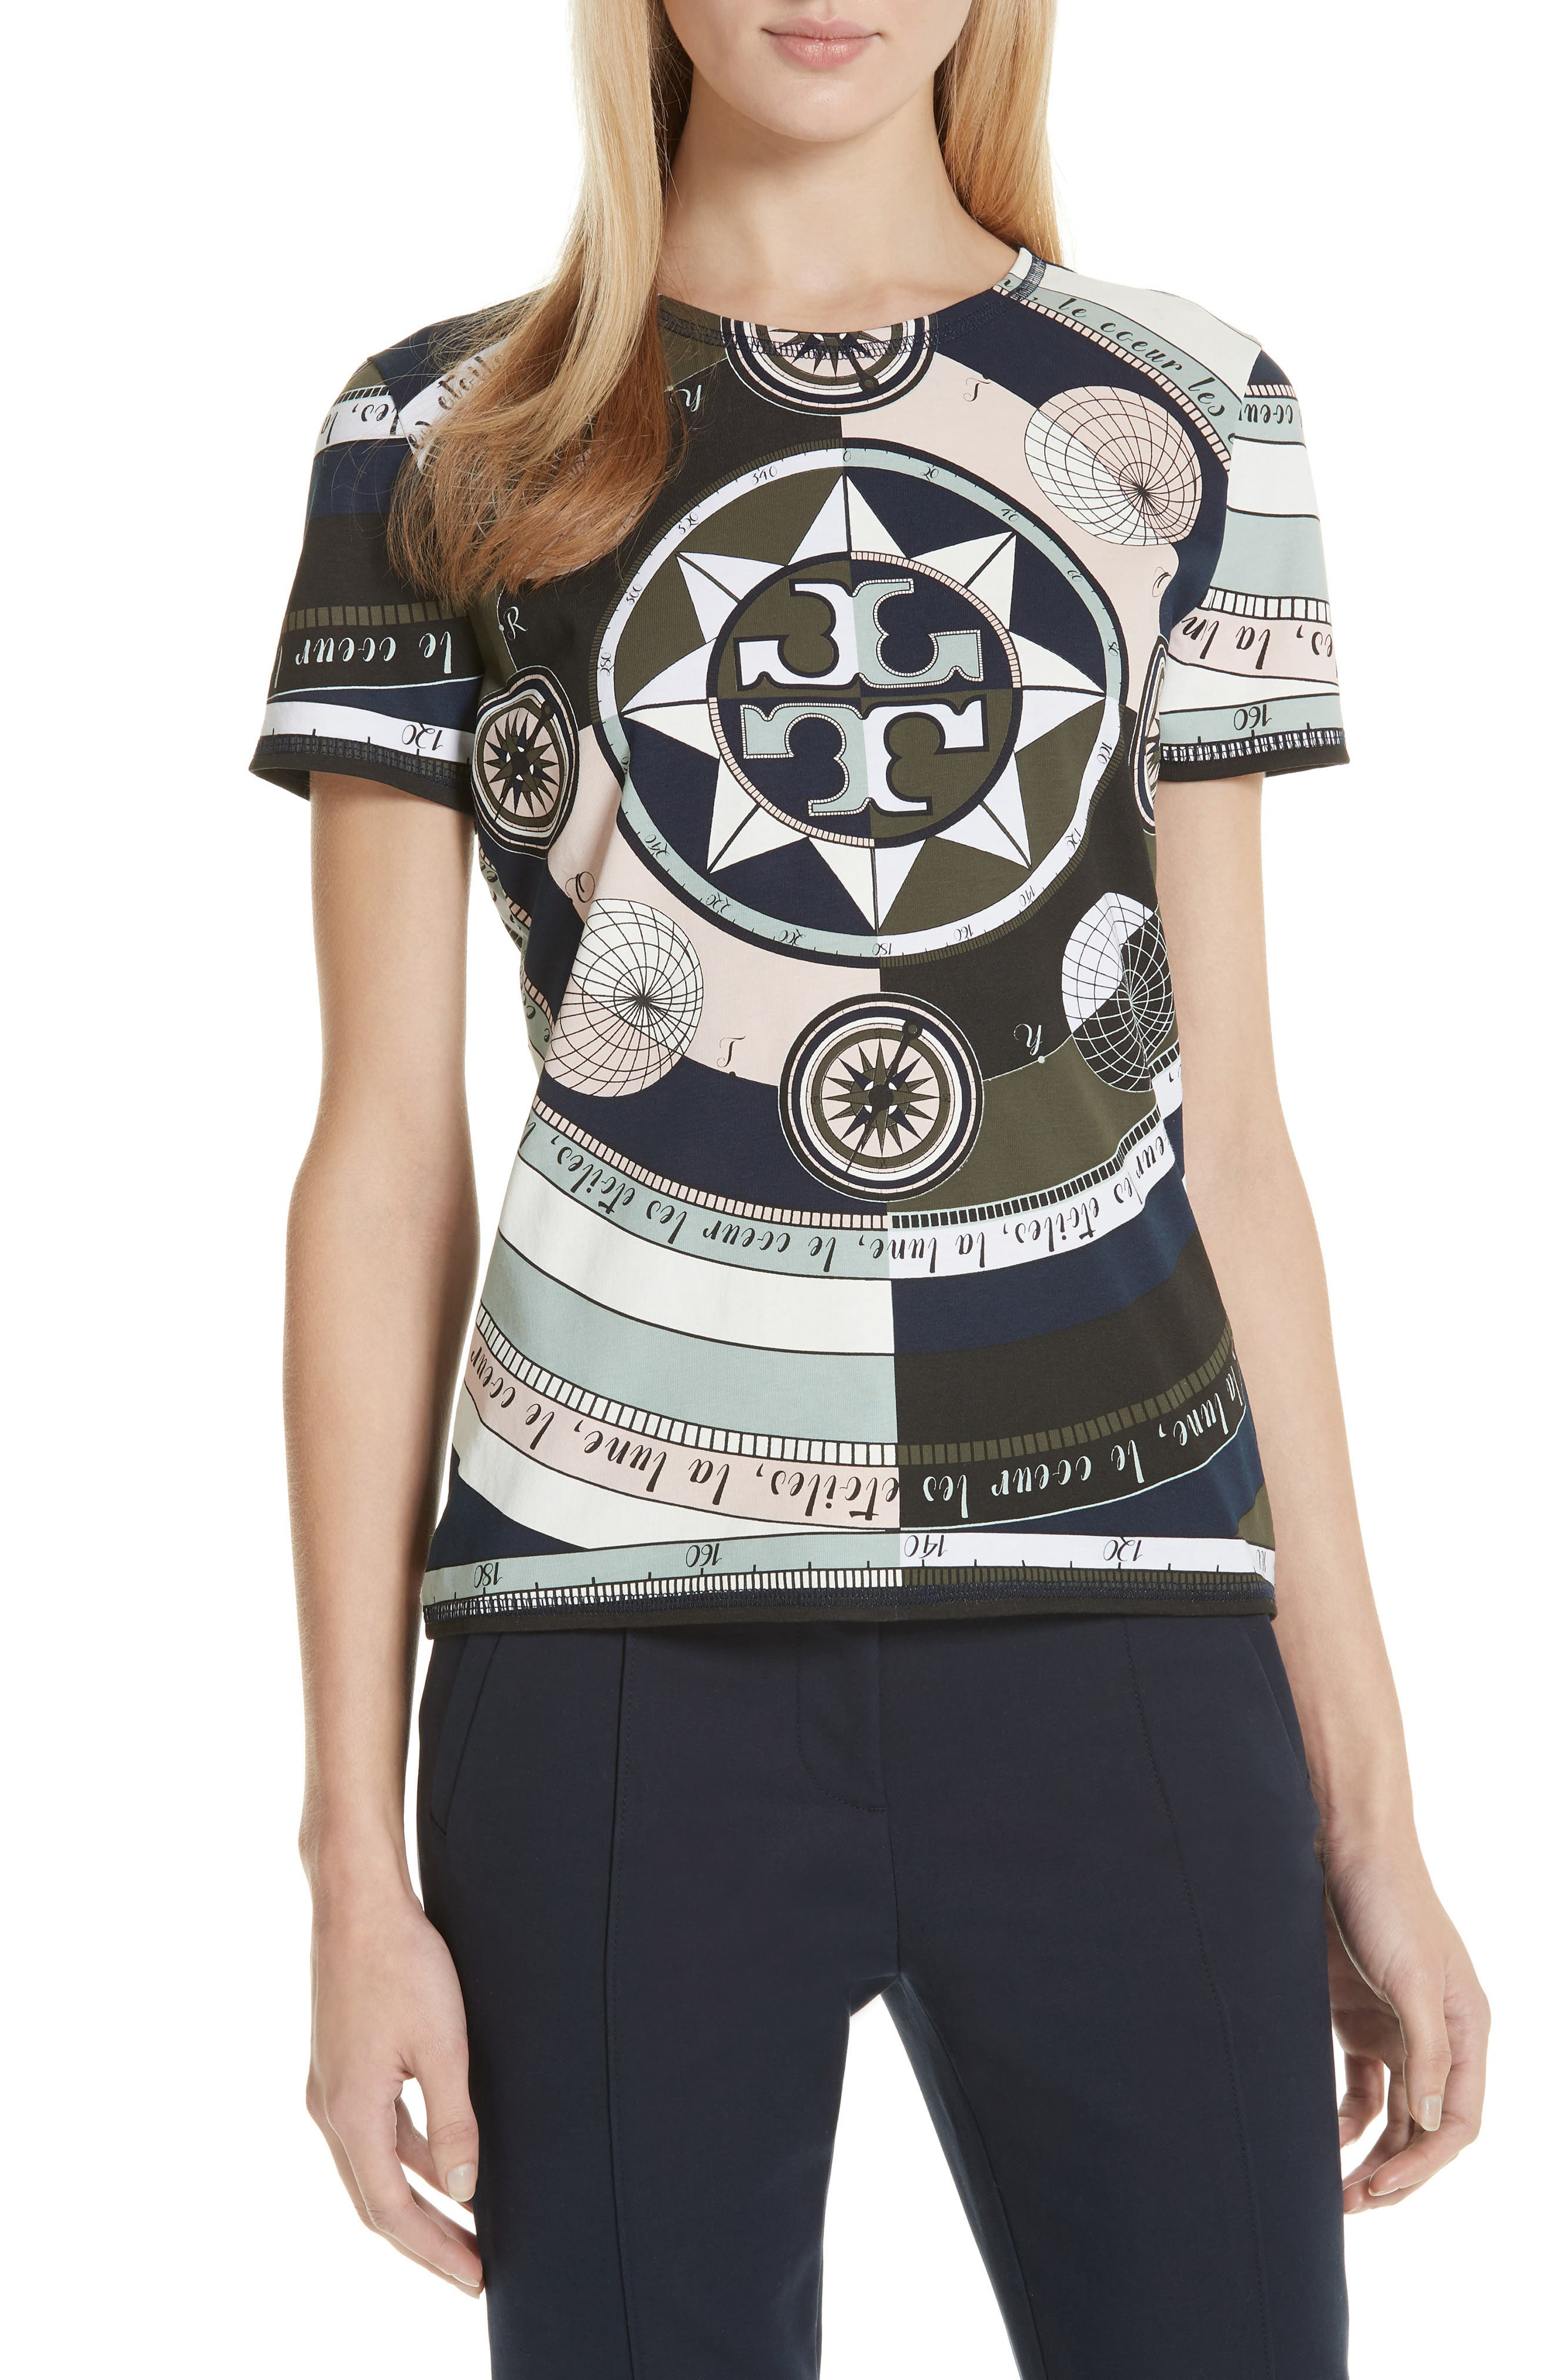 Louis Octagonal-Print T-Shirt in Navyconstellation